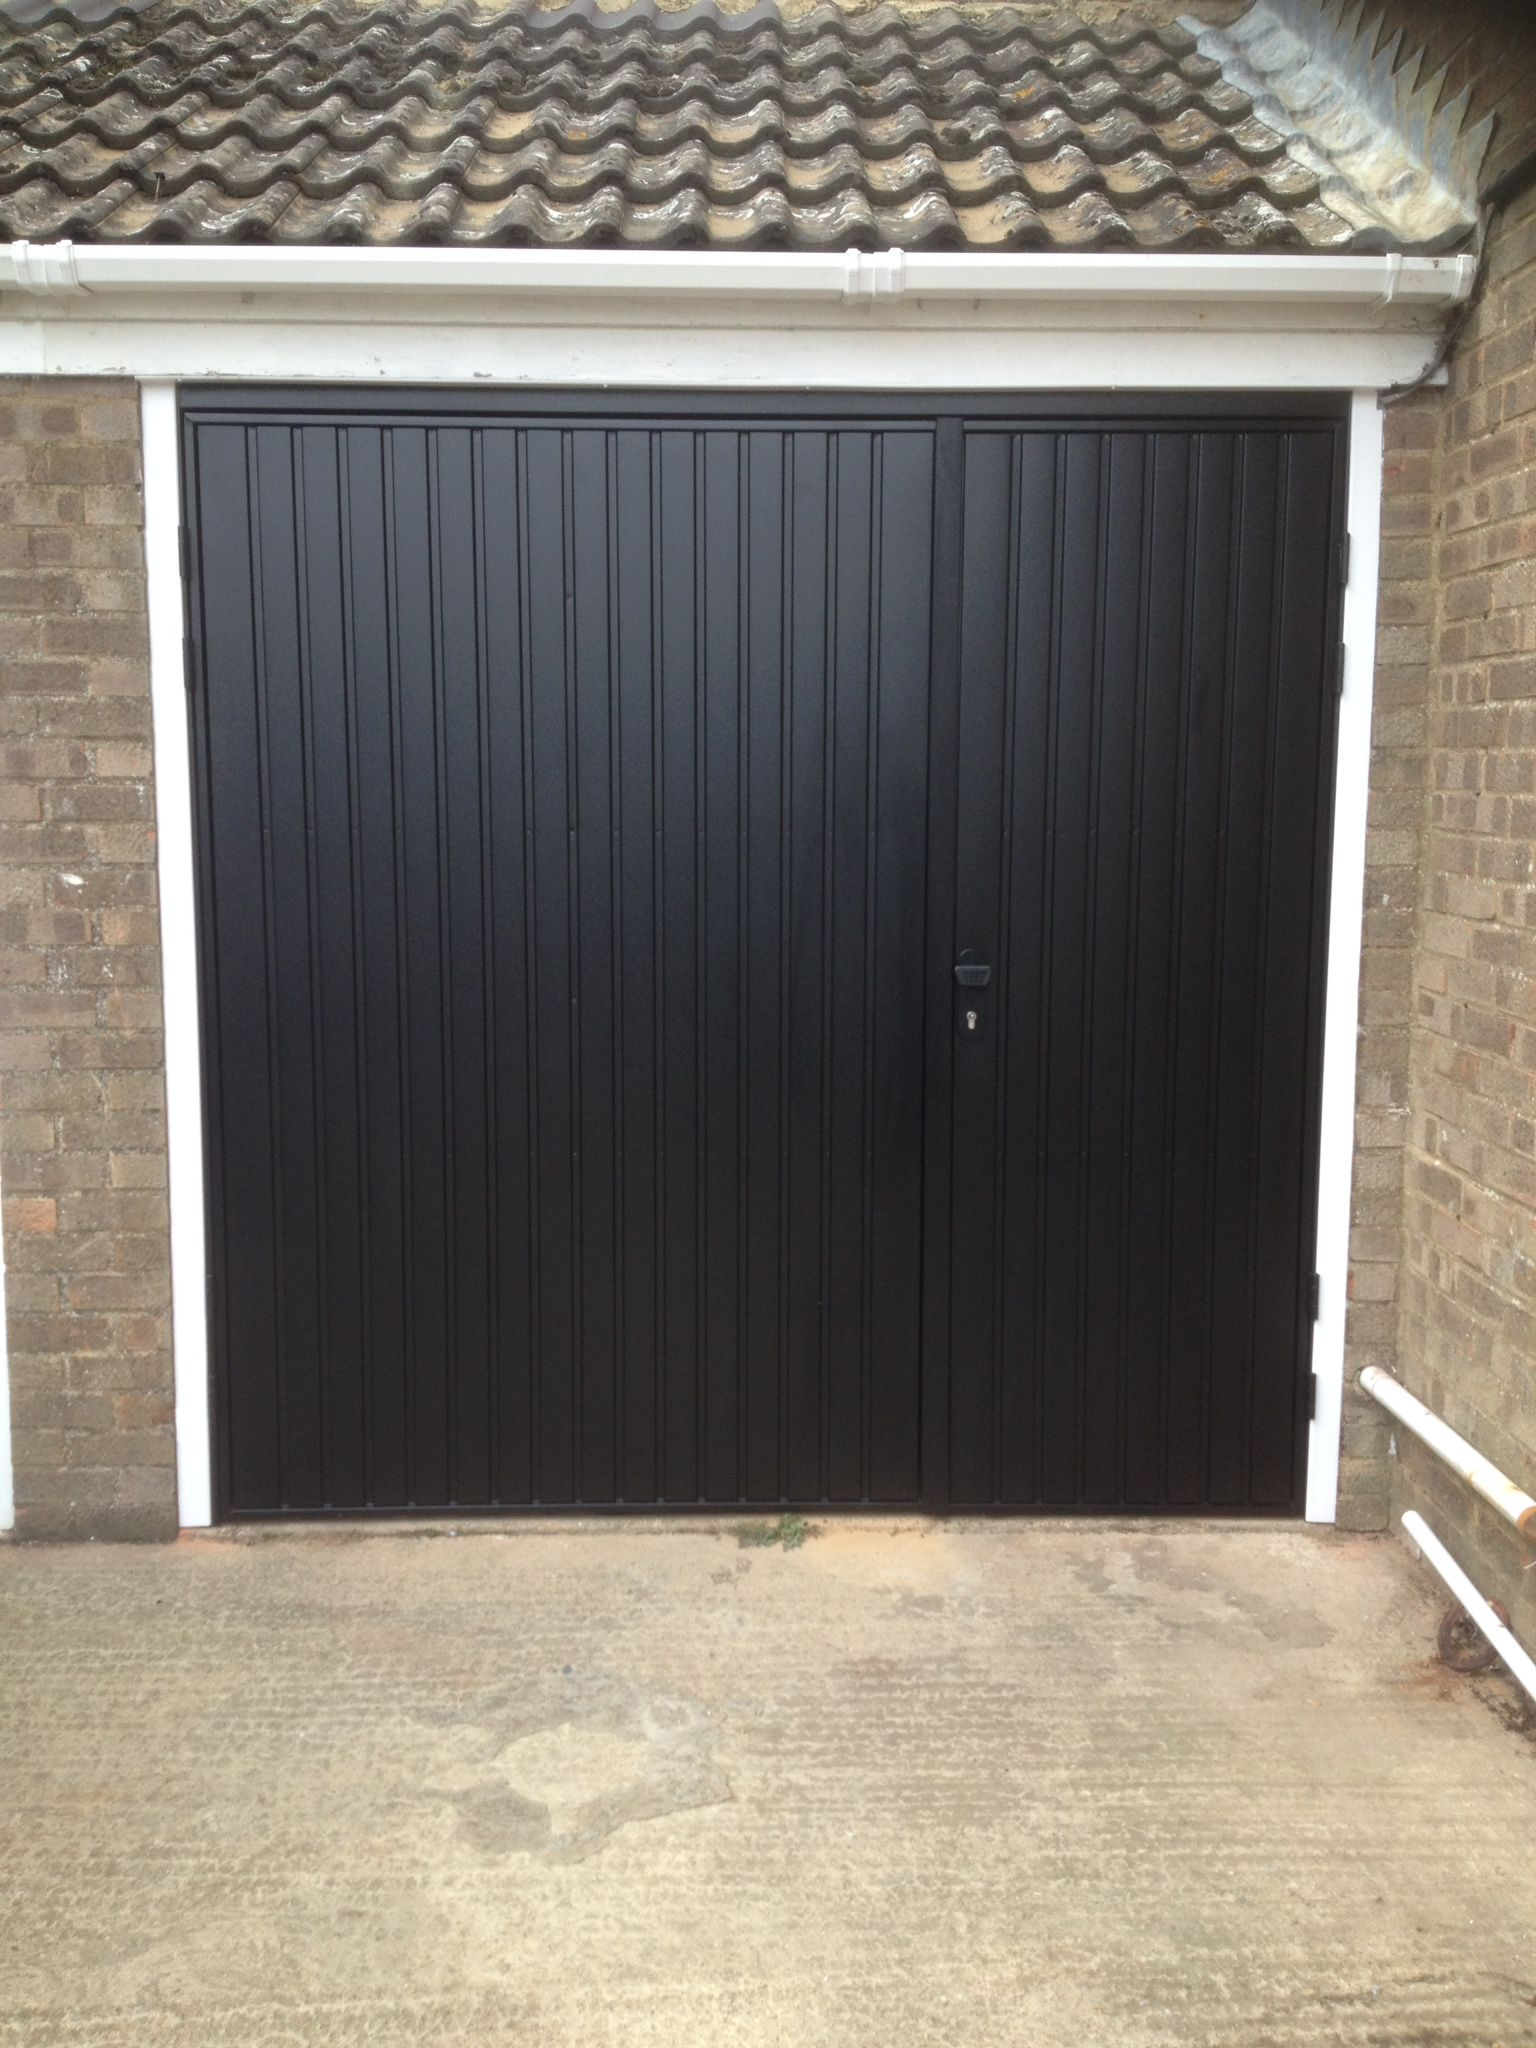 org l sizes framing pocket door garage lovely pilotproject